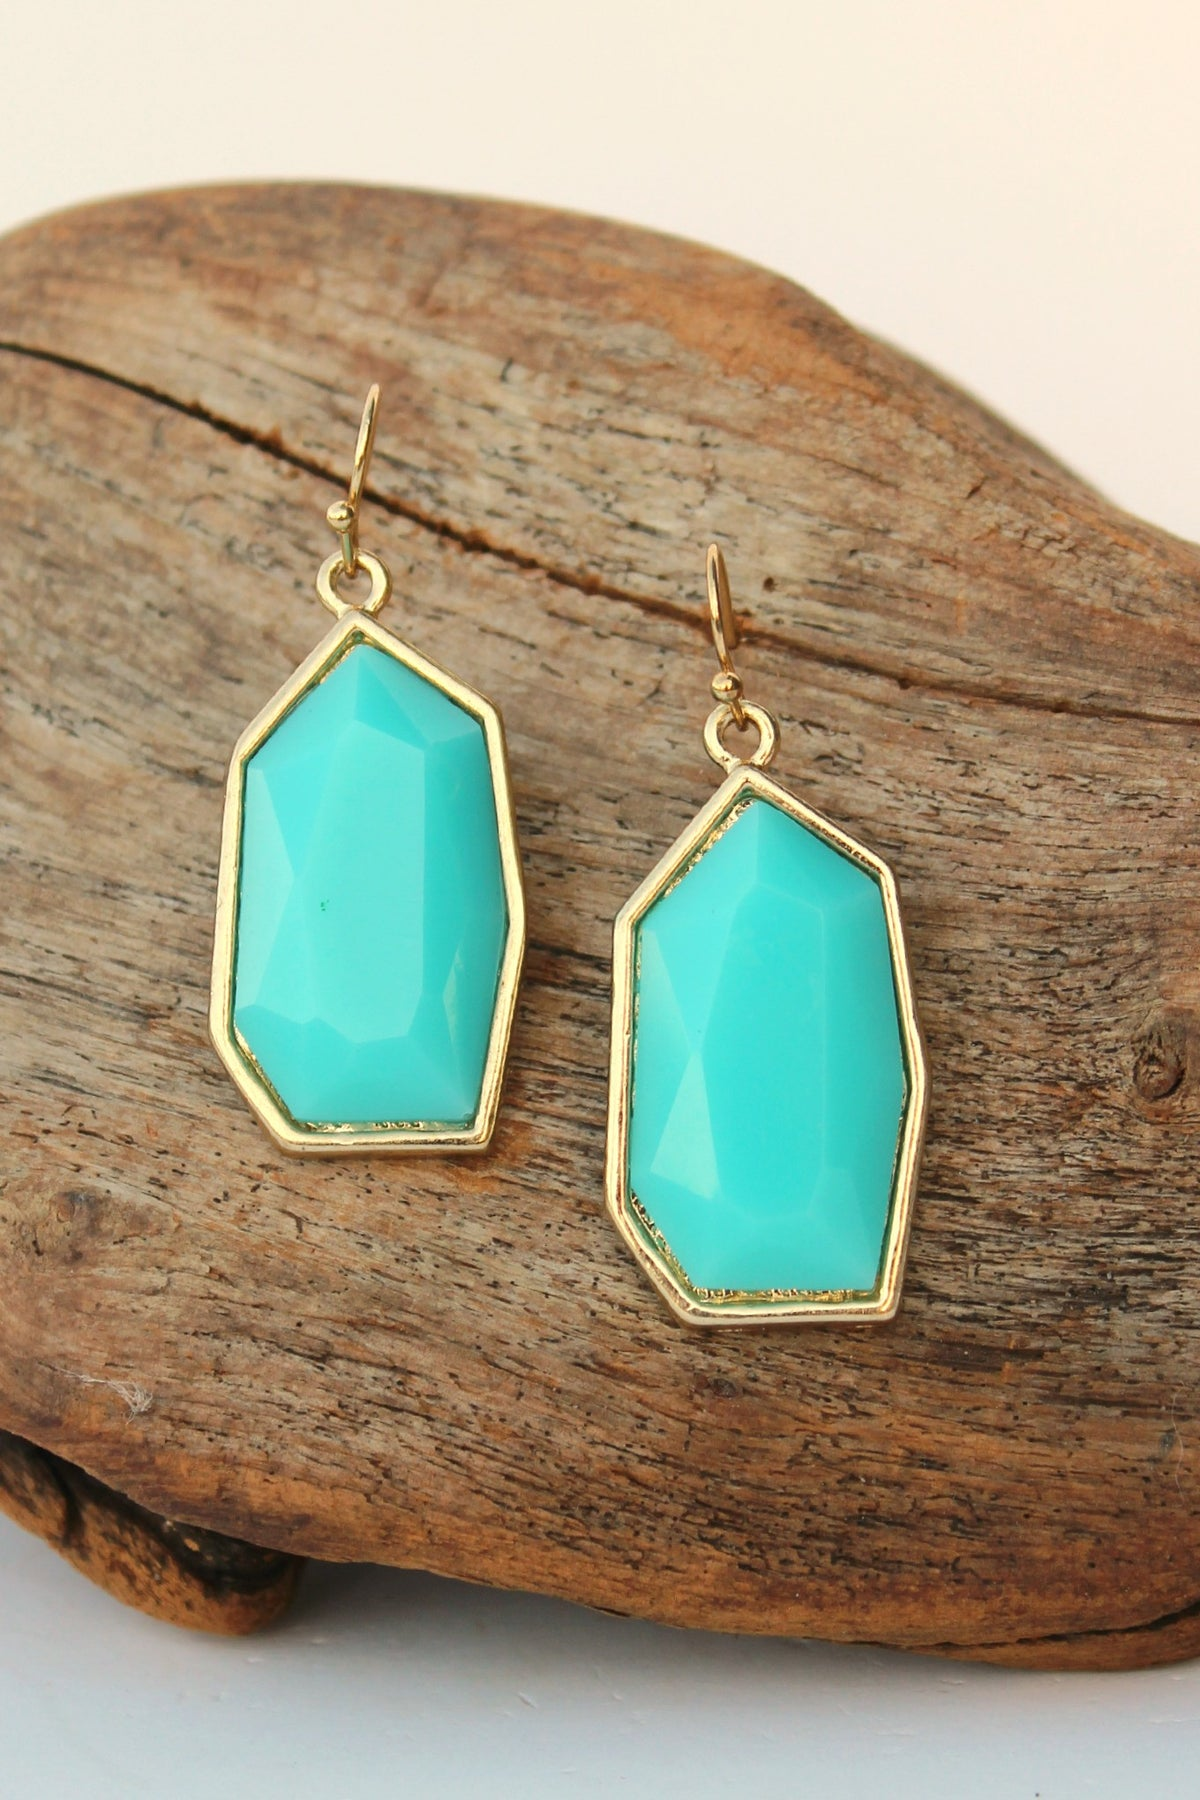 Offset Pentagon Earrings, Aqua